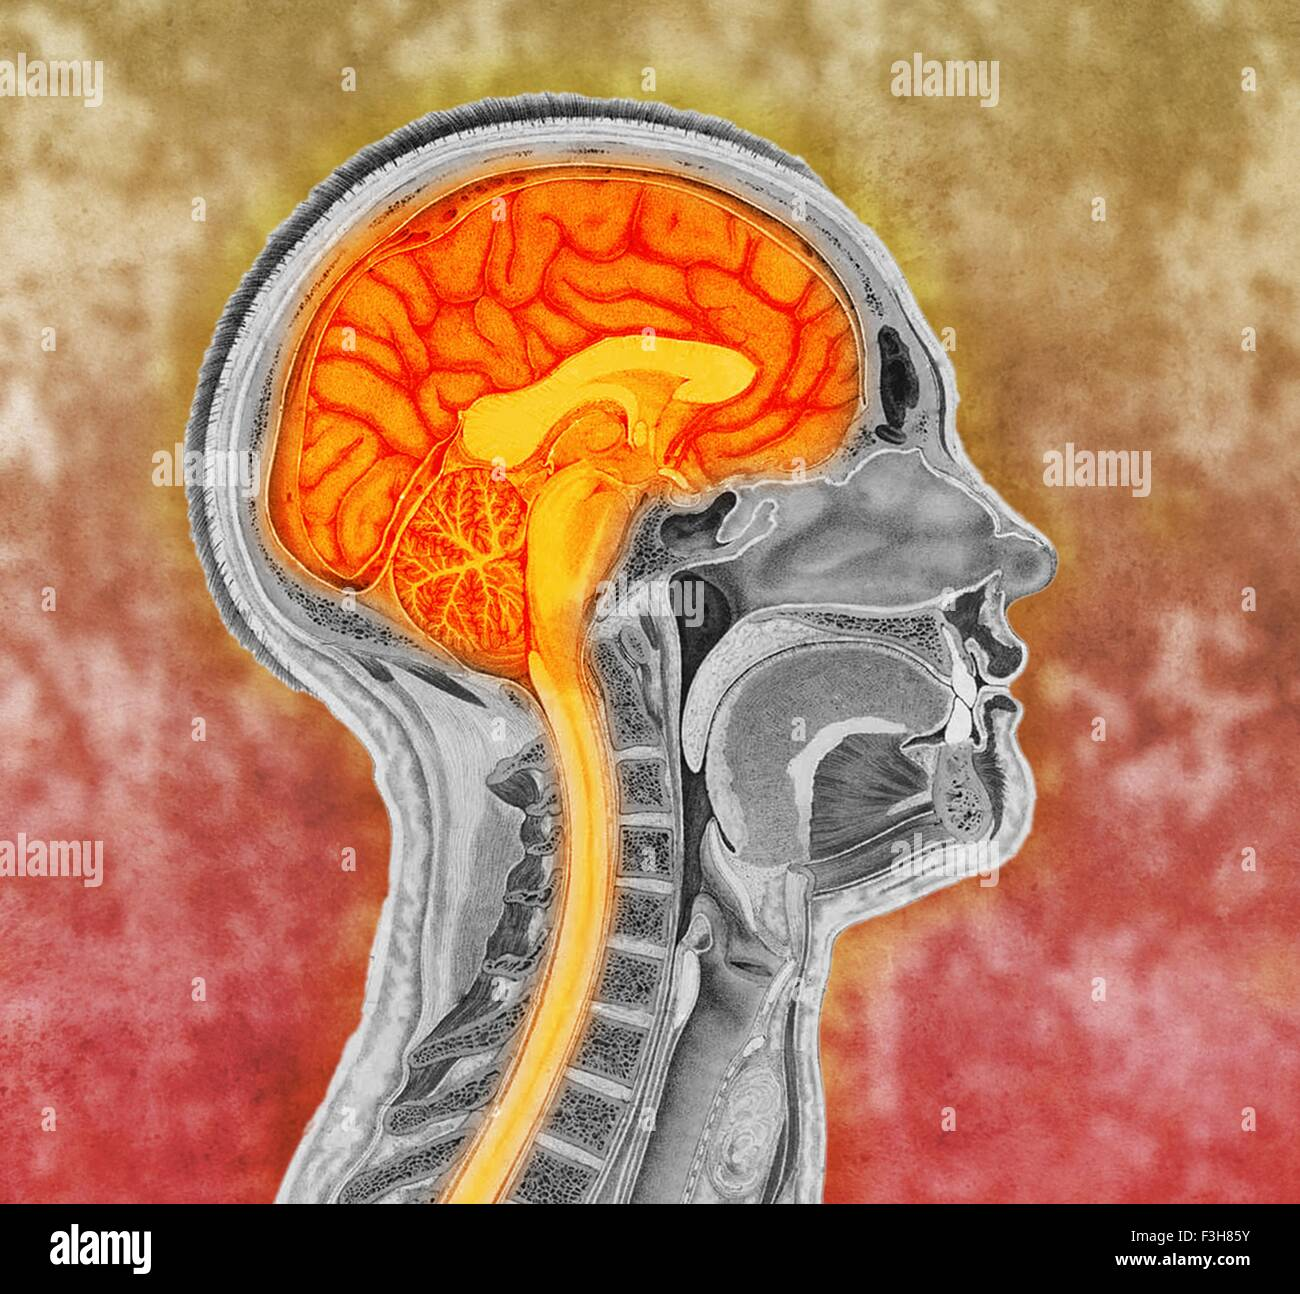 Colorized antique illustration of the human brain - Stock Image